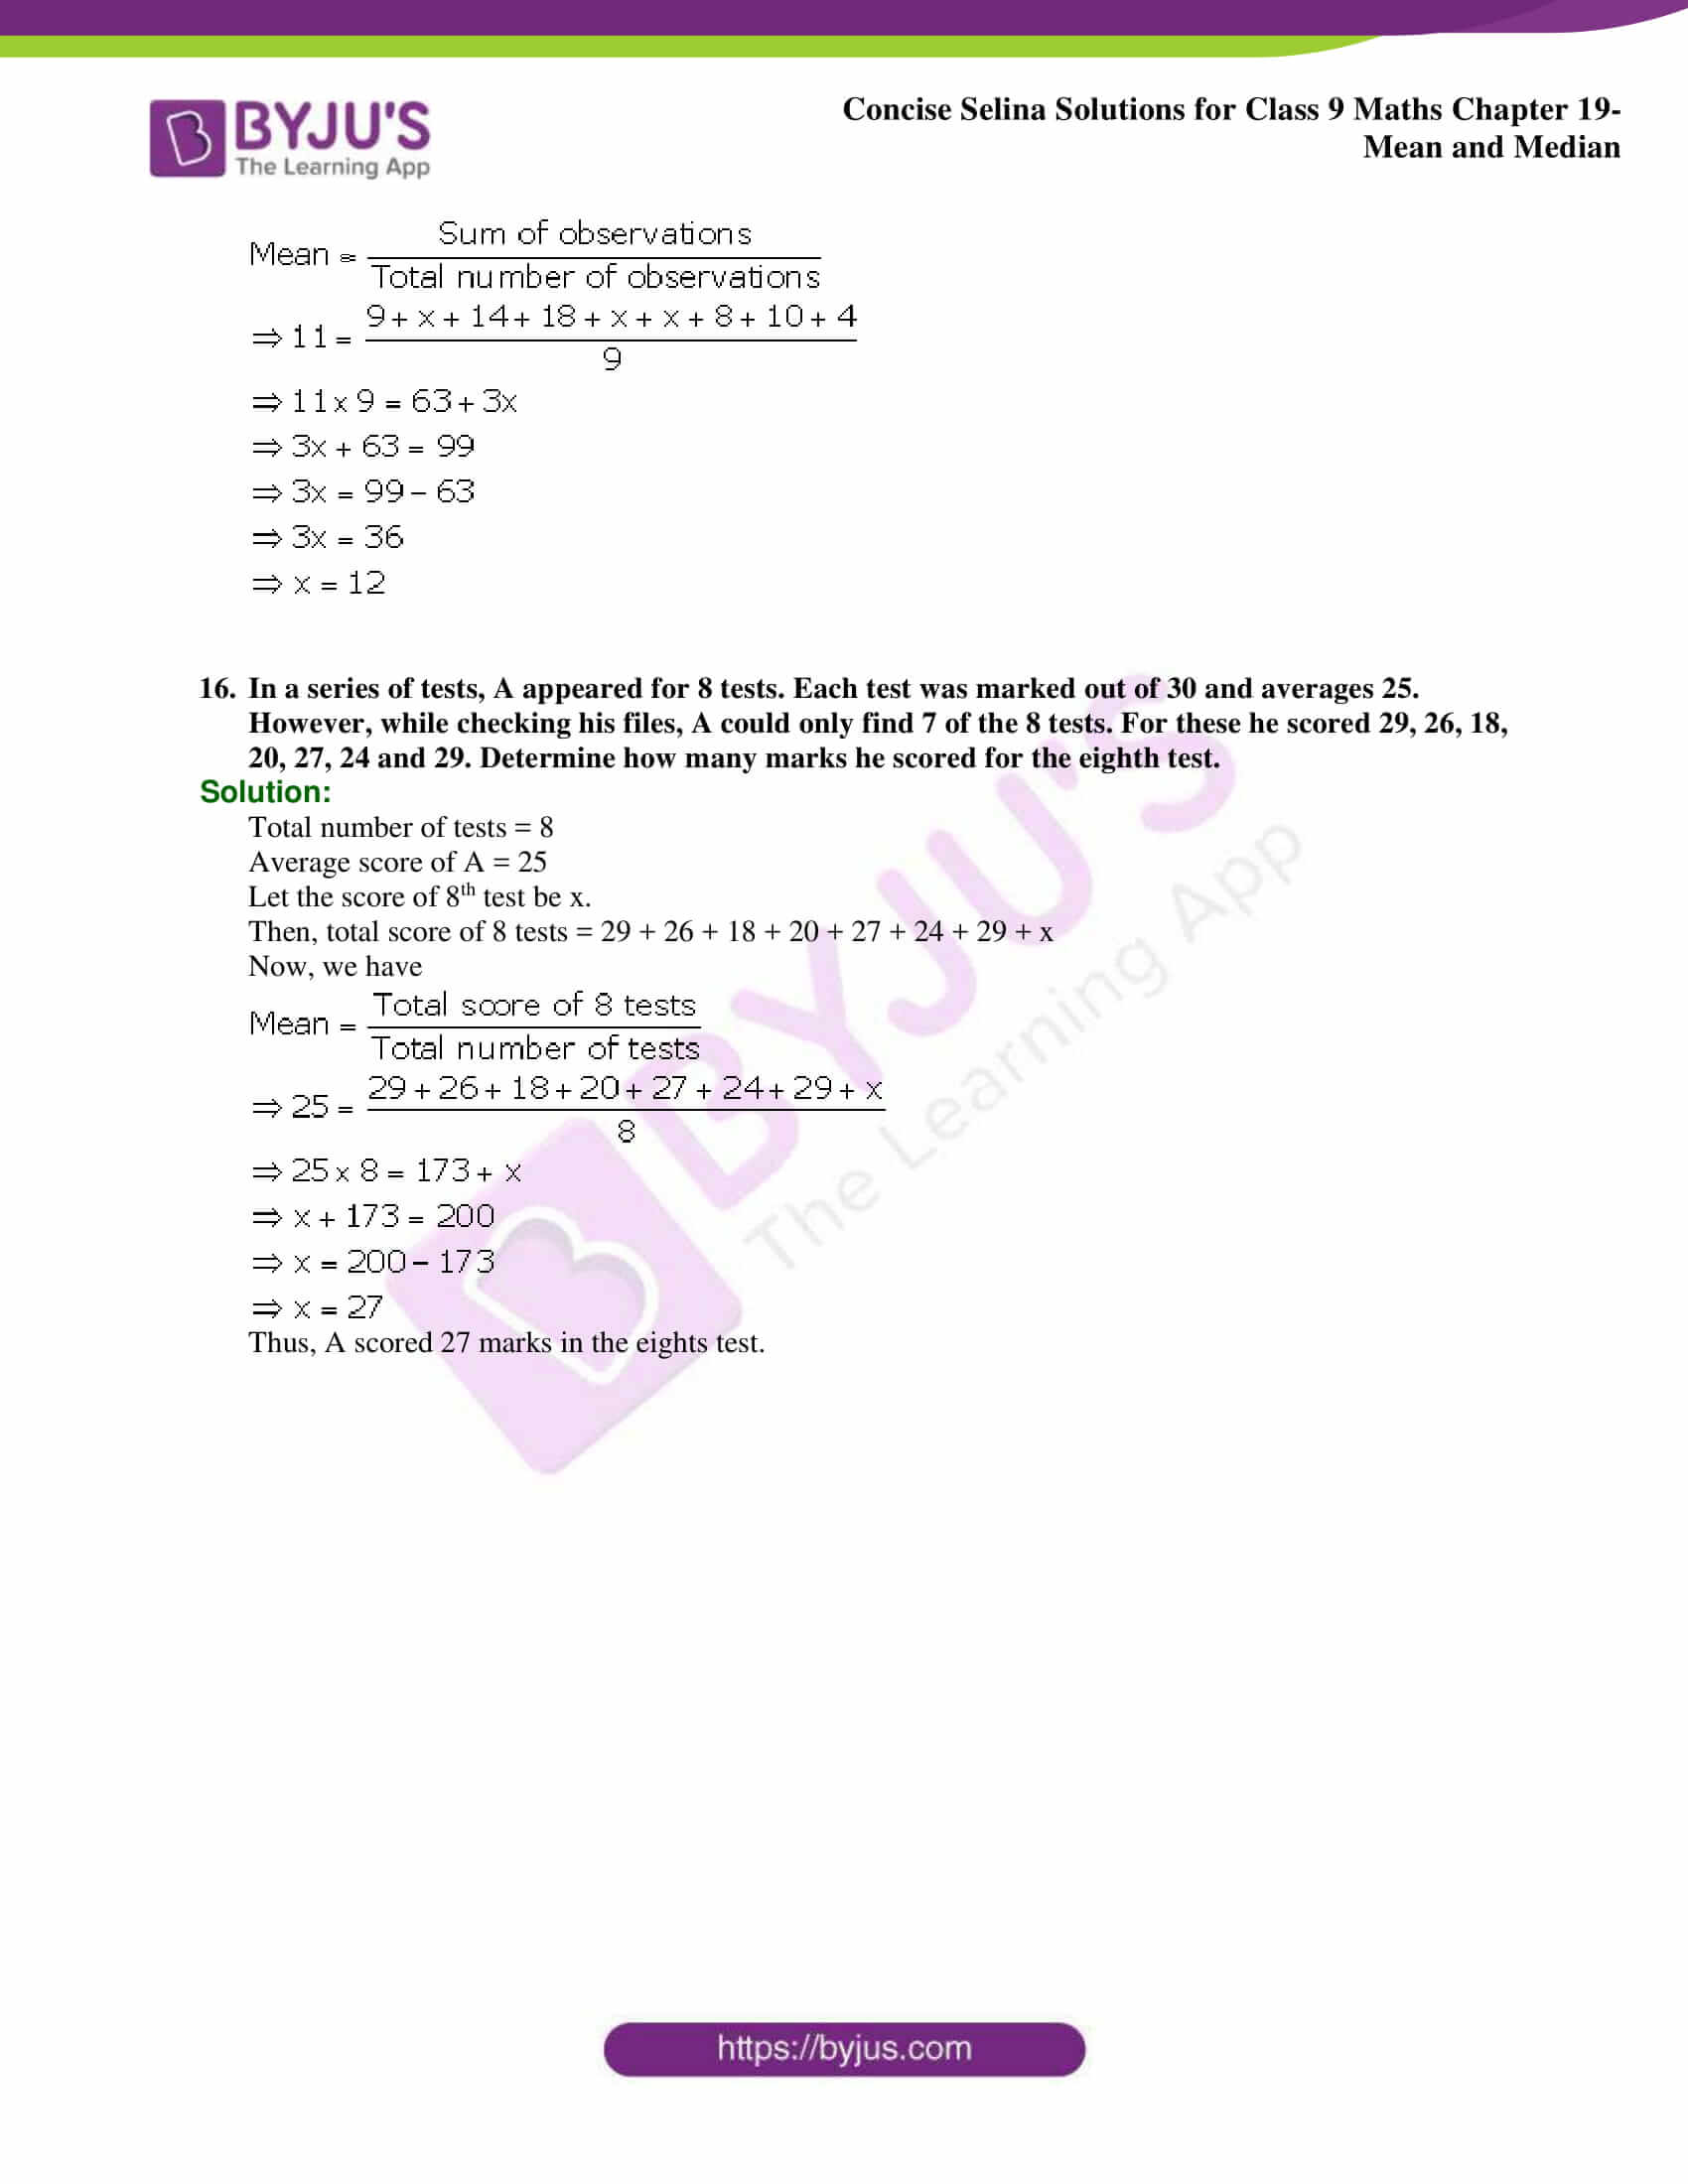 Concise Selina Solutions Class 9 Maths Chapter 19 Mean and Median part 08